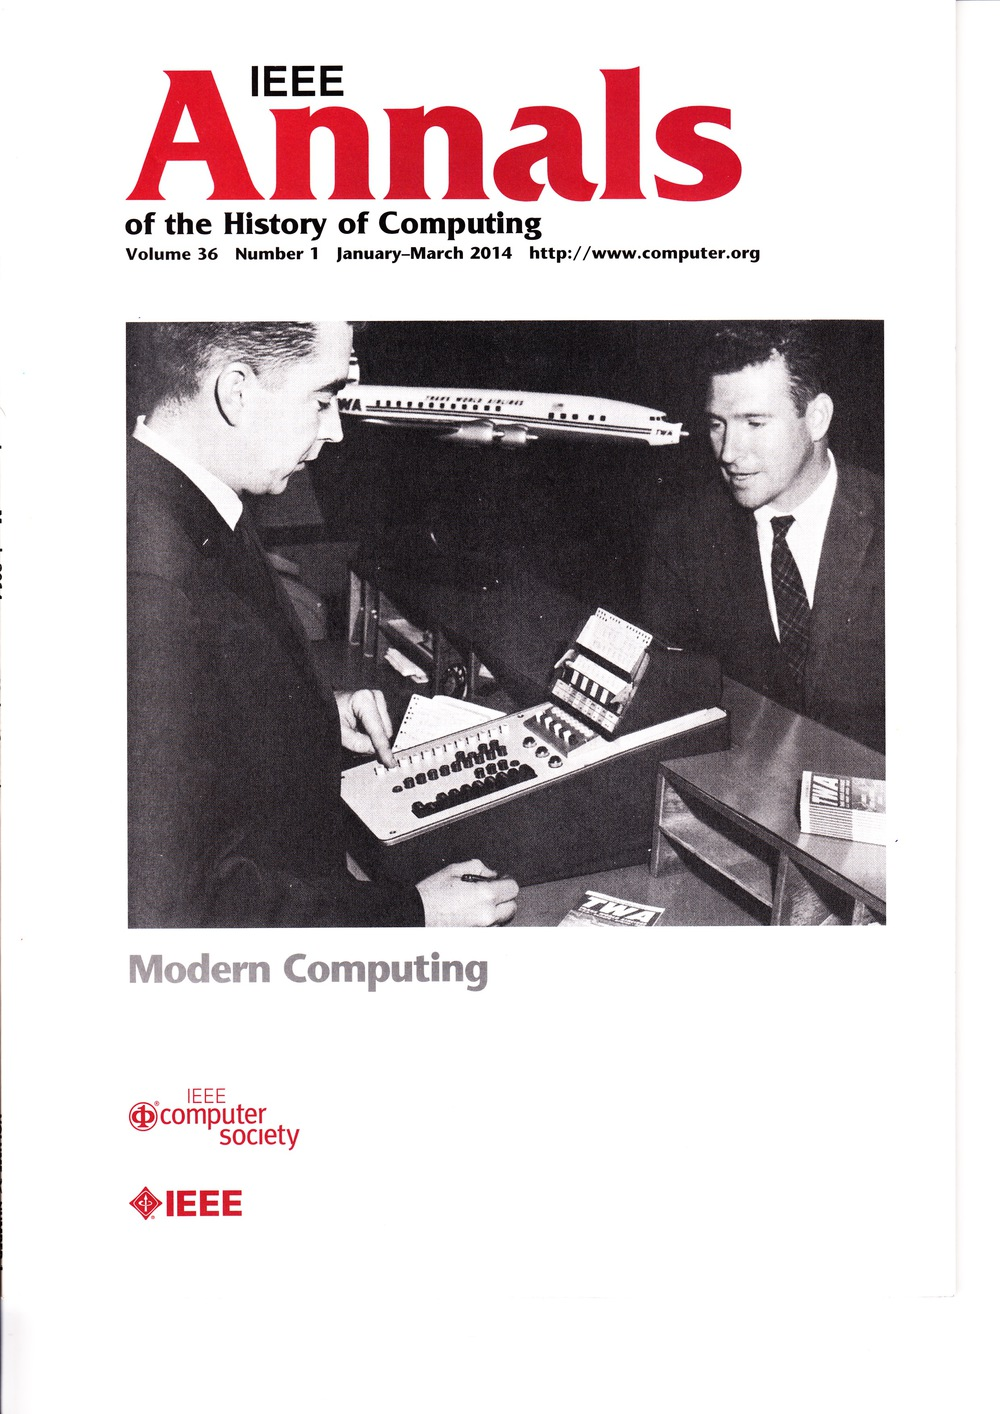 Scan of Document: IEEE Annals of the History of Computing - January-March 2014